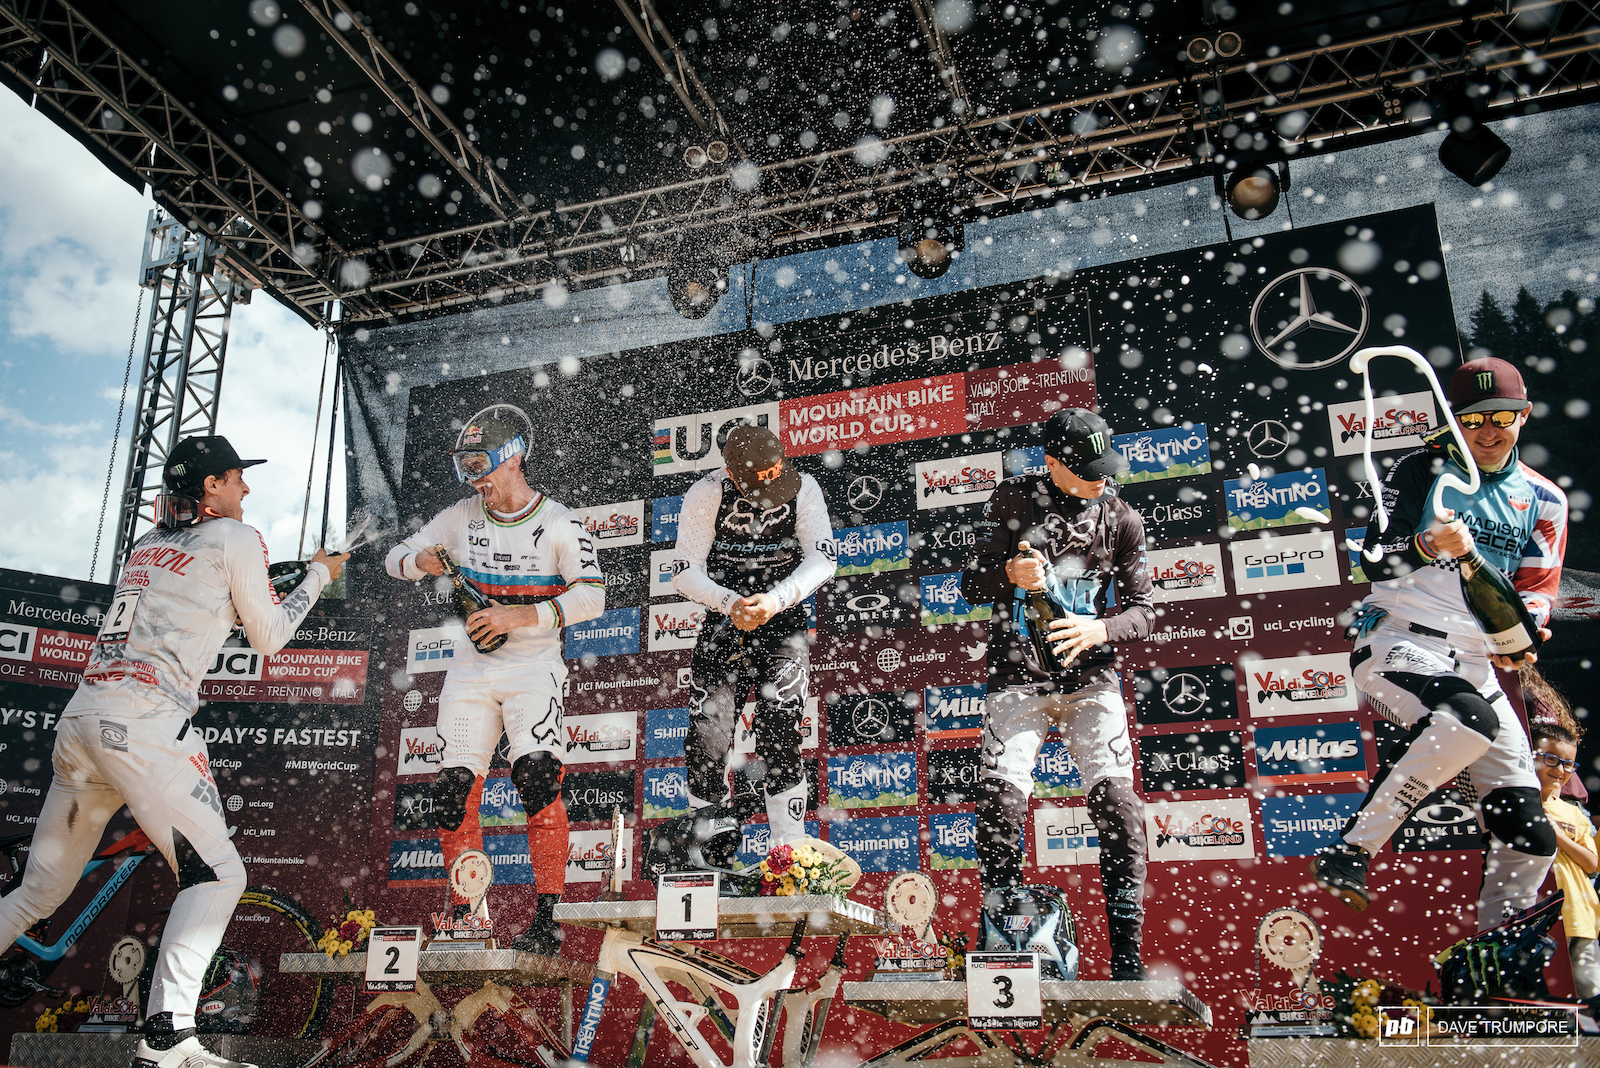 Podium celebrations as Laurie Greenland won his first Wolrd Cup and put a temporary halt to the winning streaks of Loic Bruni and Amaury Pierron